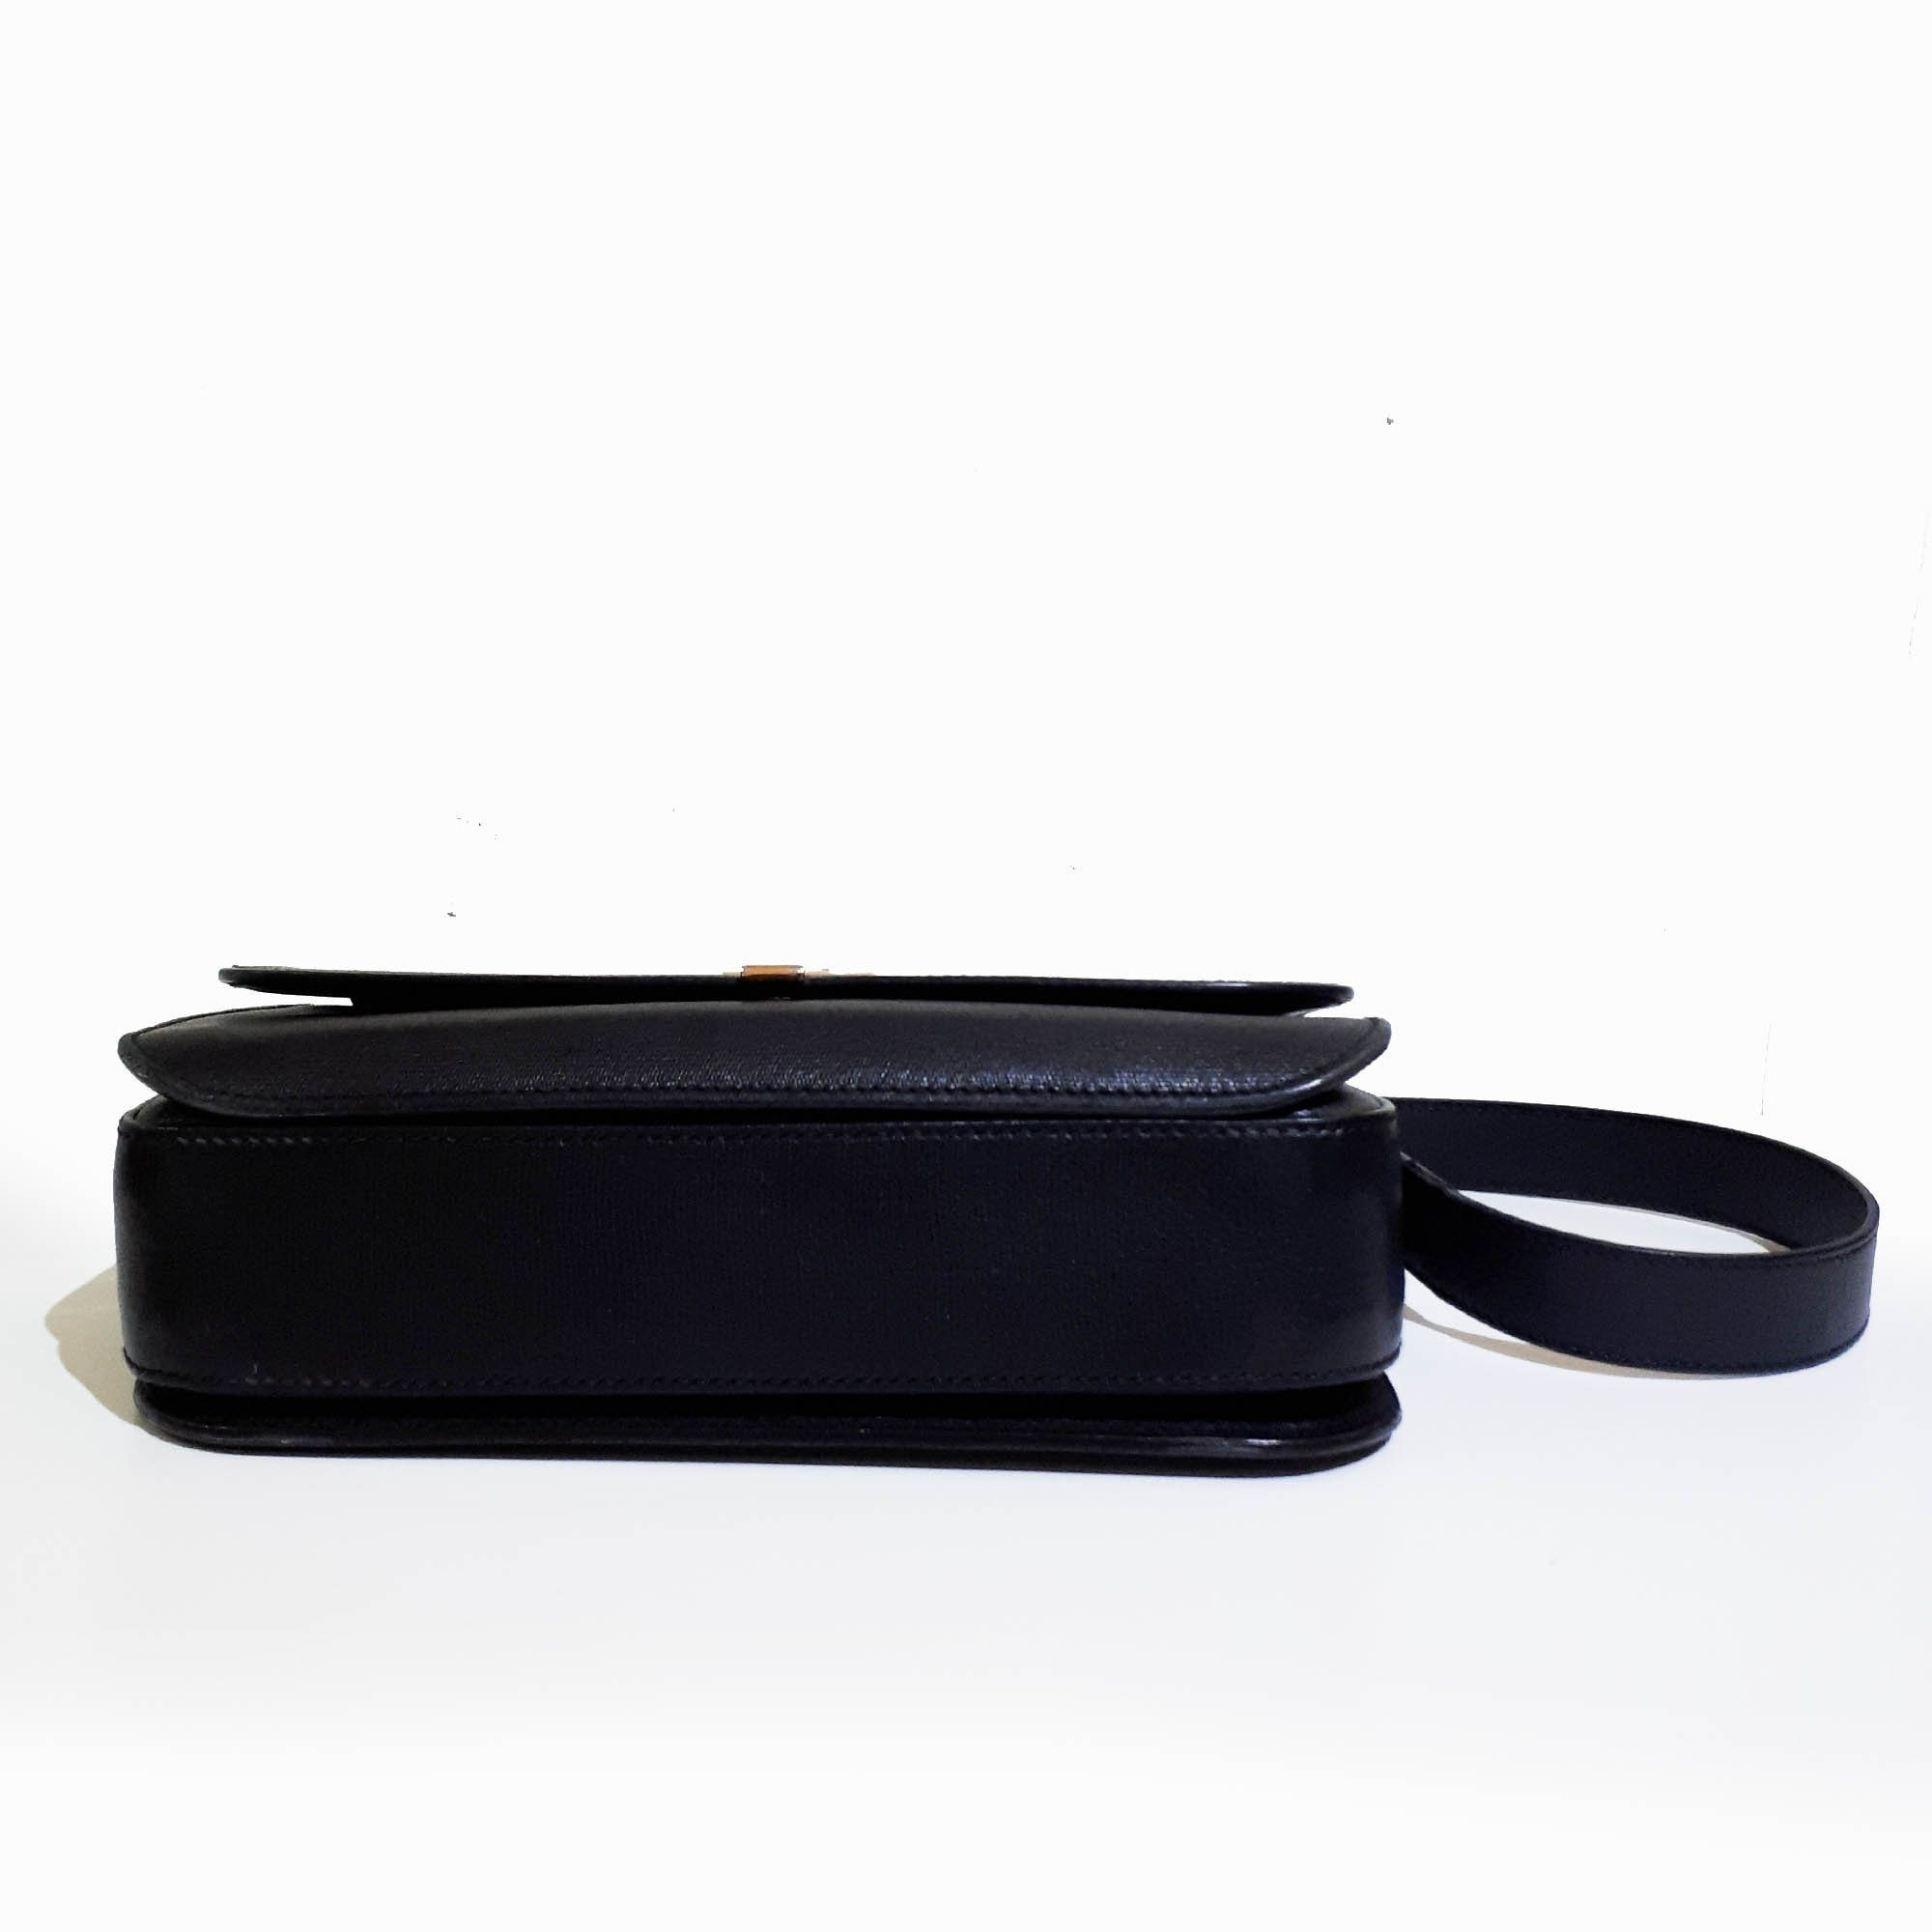 Saint Laurent Chyc Black Leather Bag